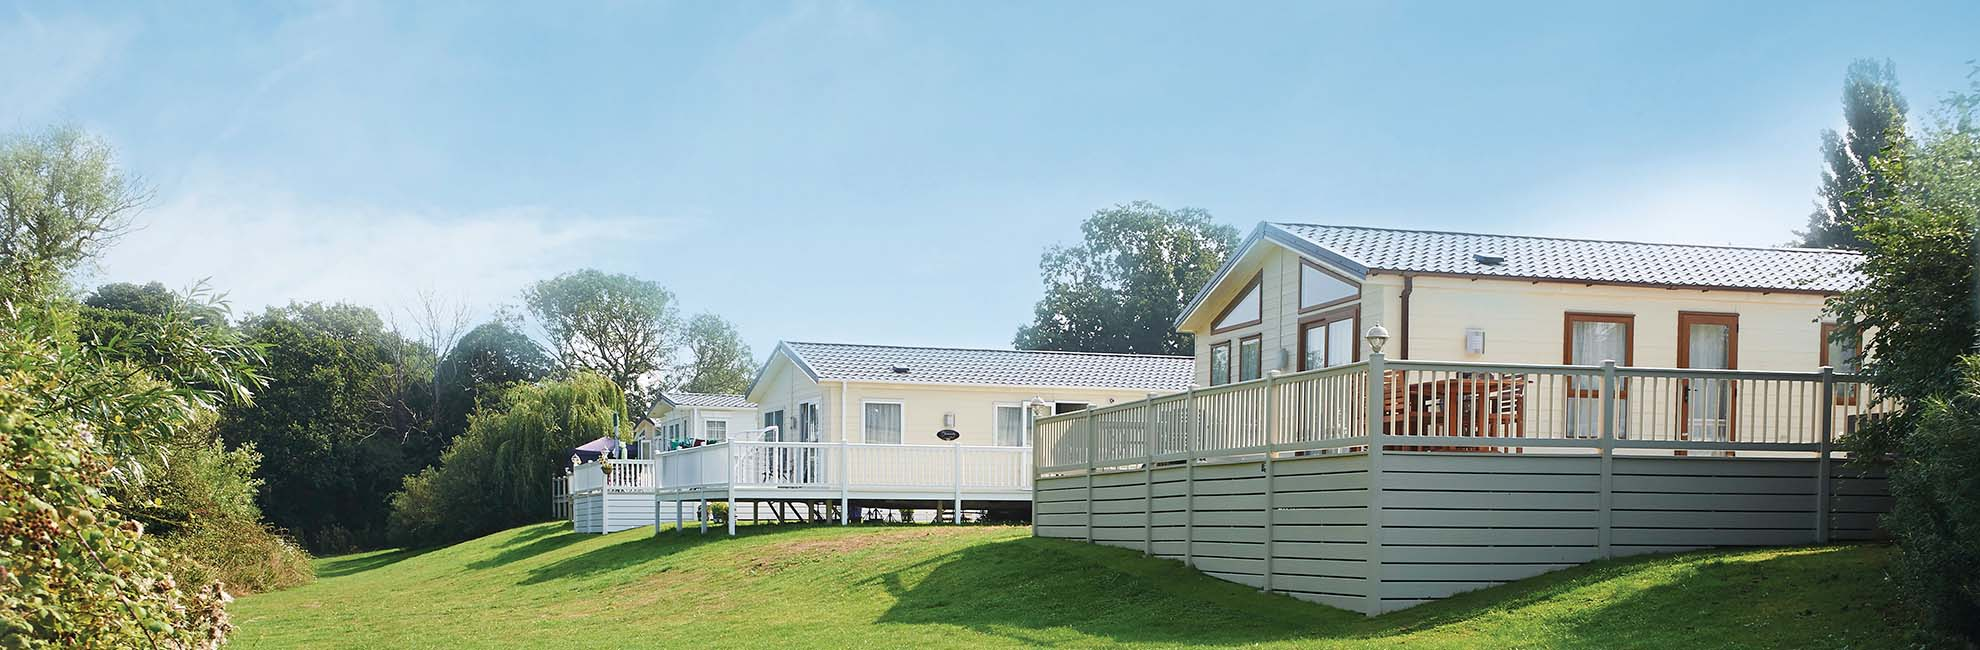 Caravans and lodges with verandas at Valley Farm Holiday Park